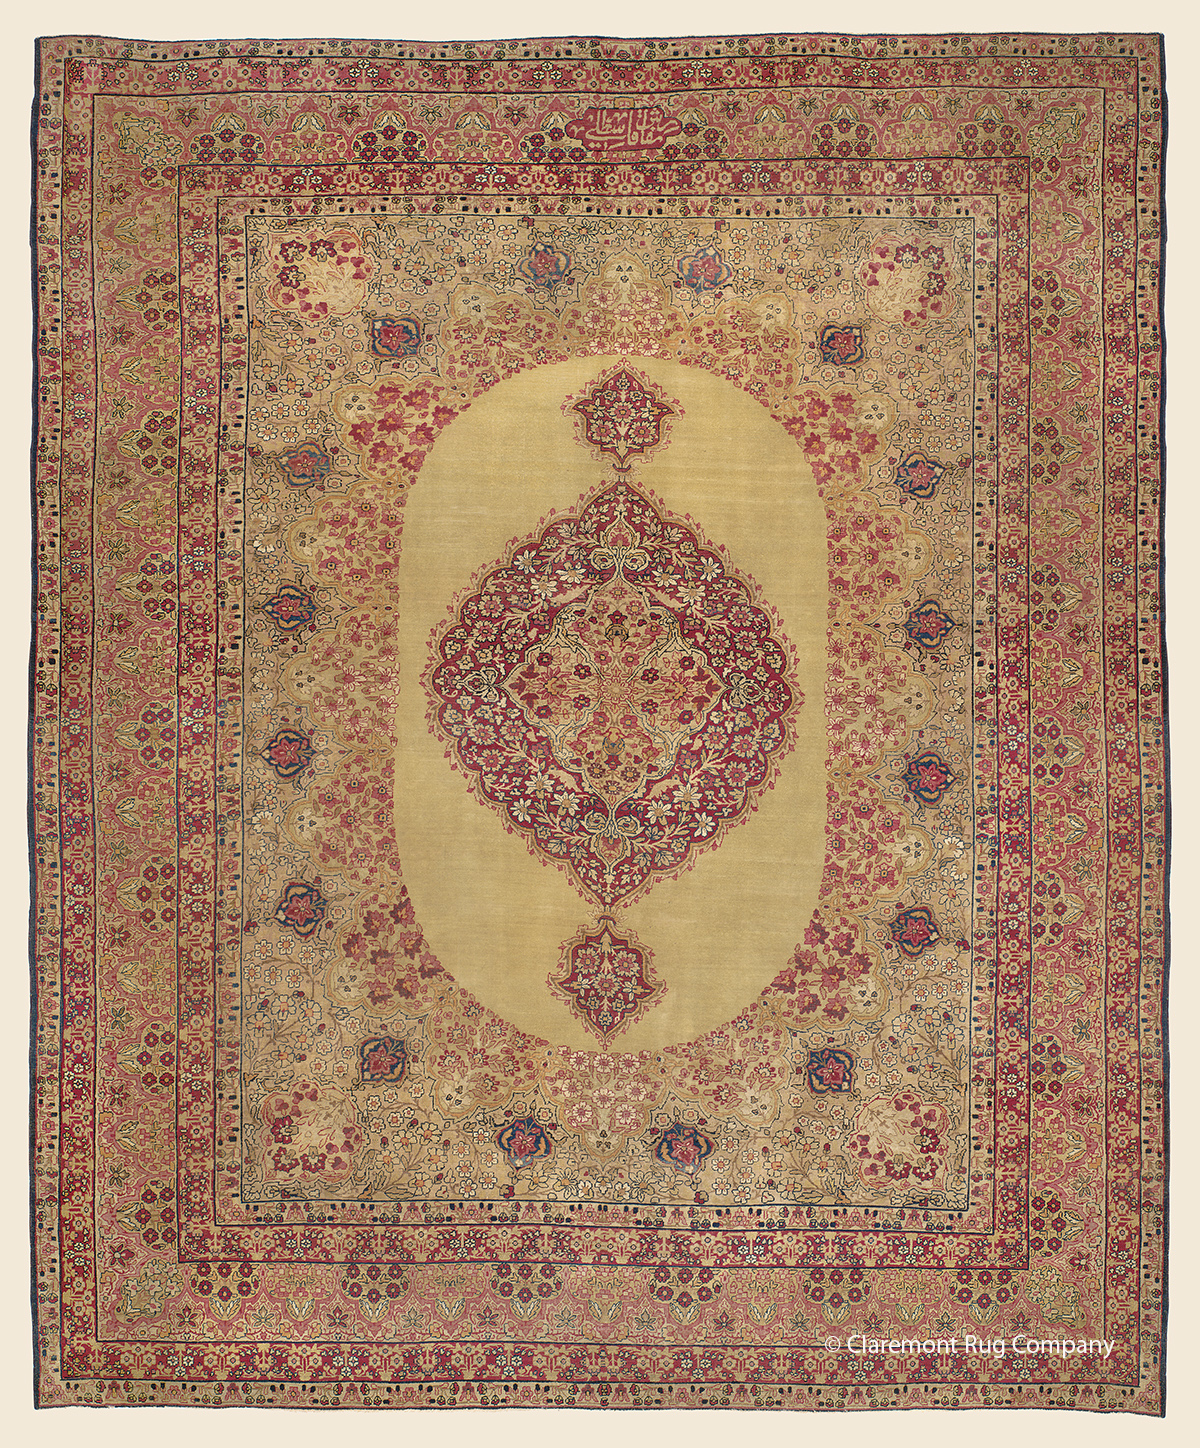 19th century Antique Persian Laver Kirman with allover floral design and overscale medallion